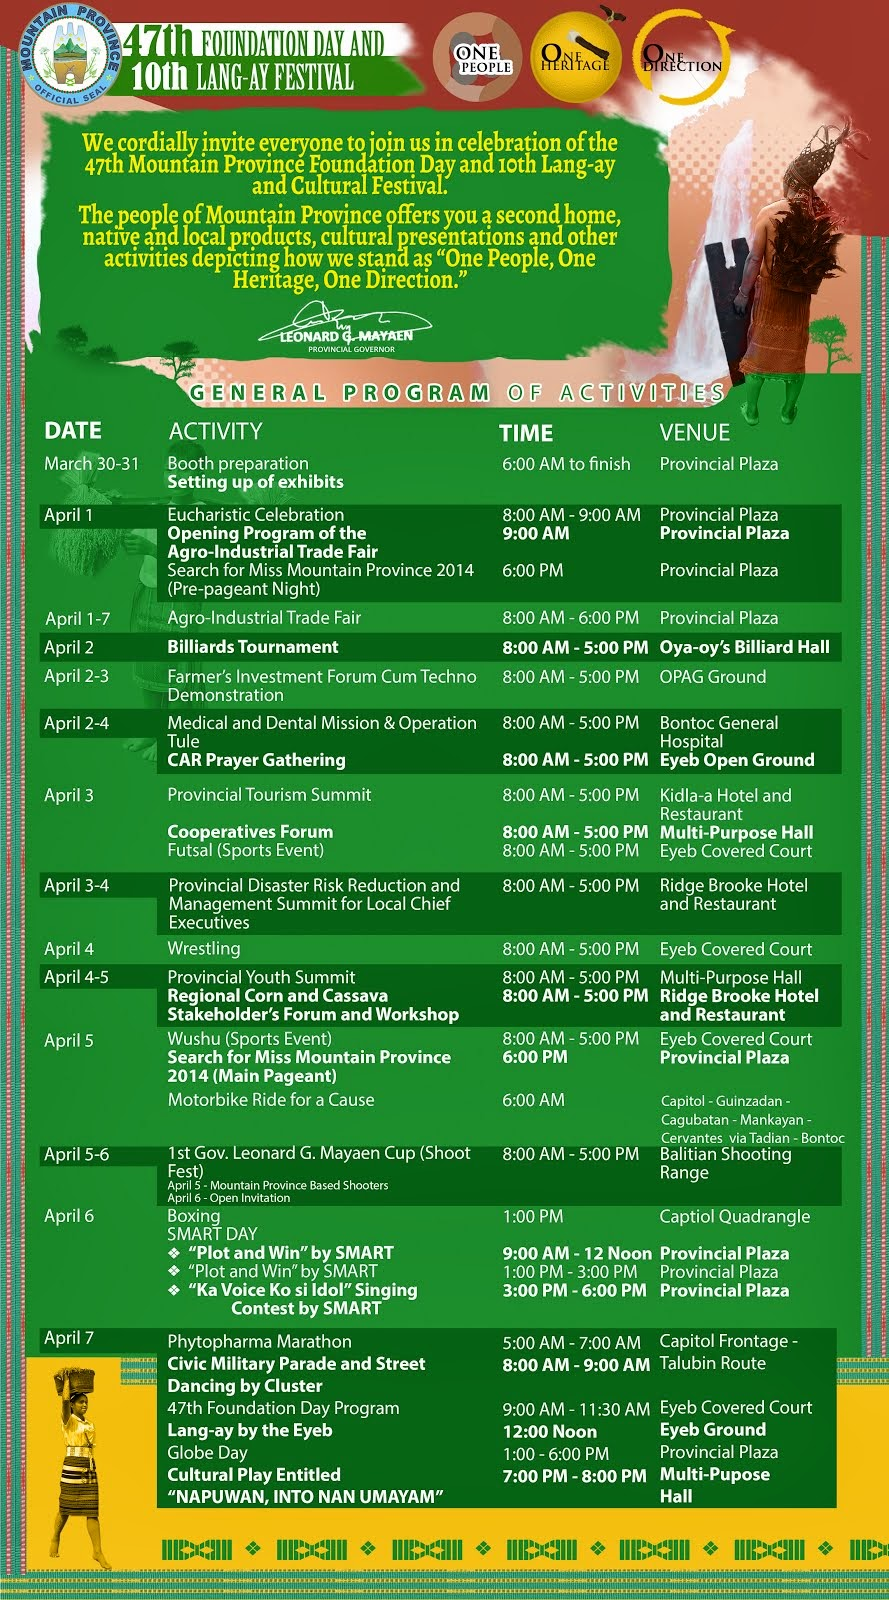 Lang-ay Festival April1-7, 2014